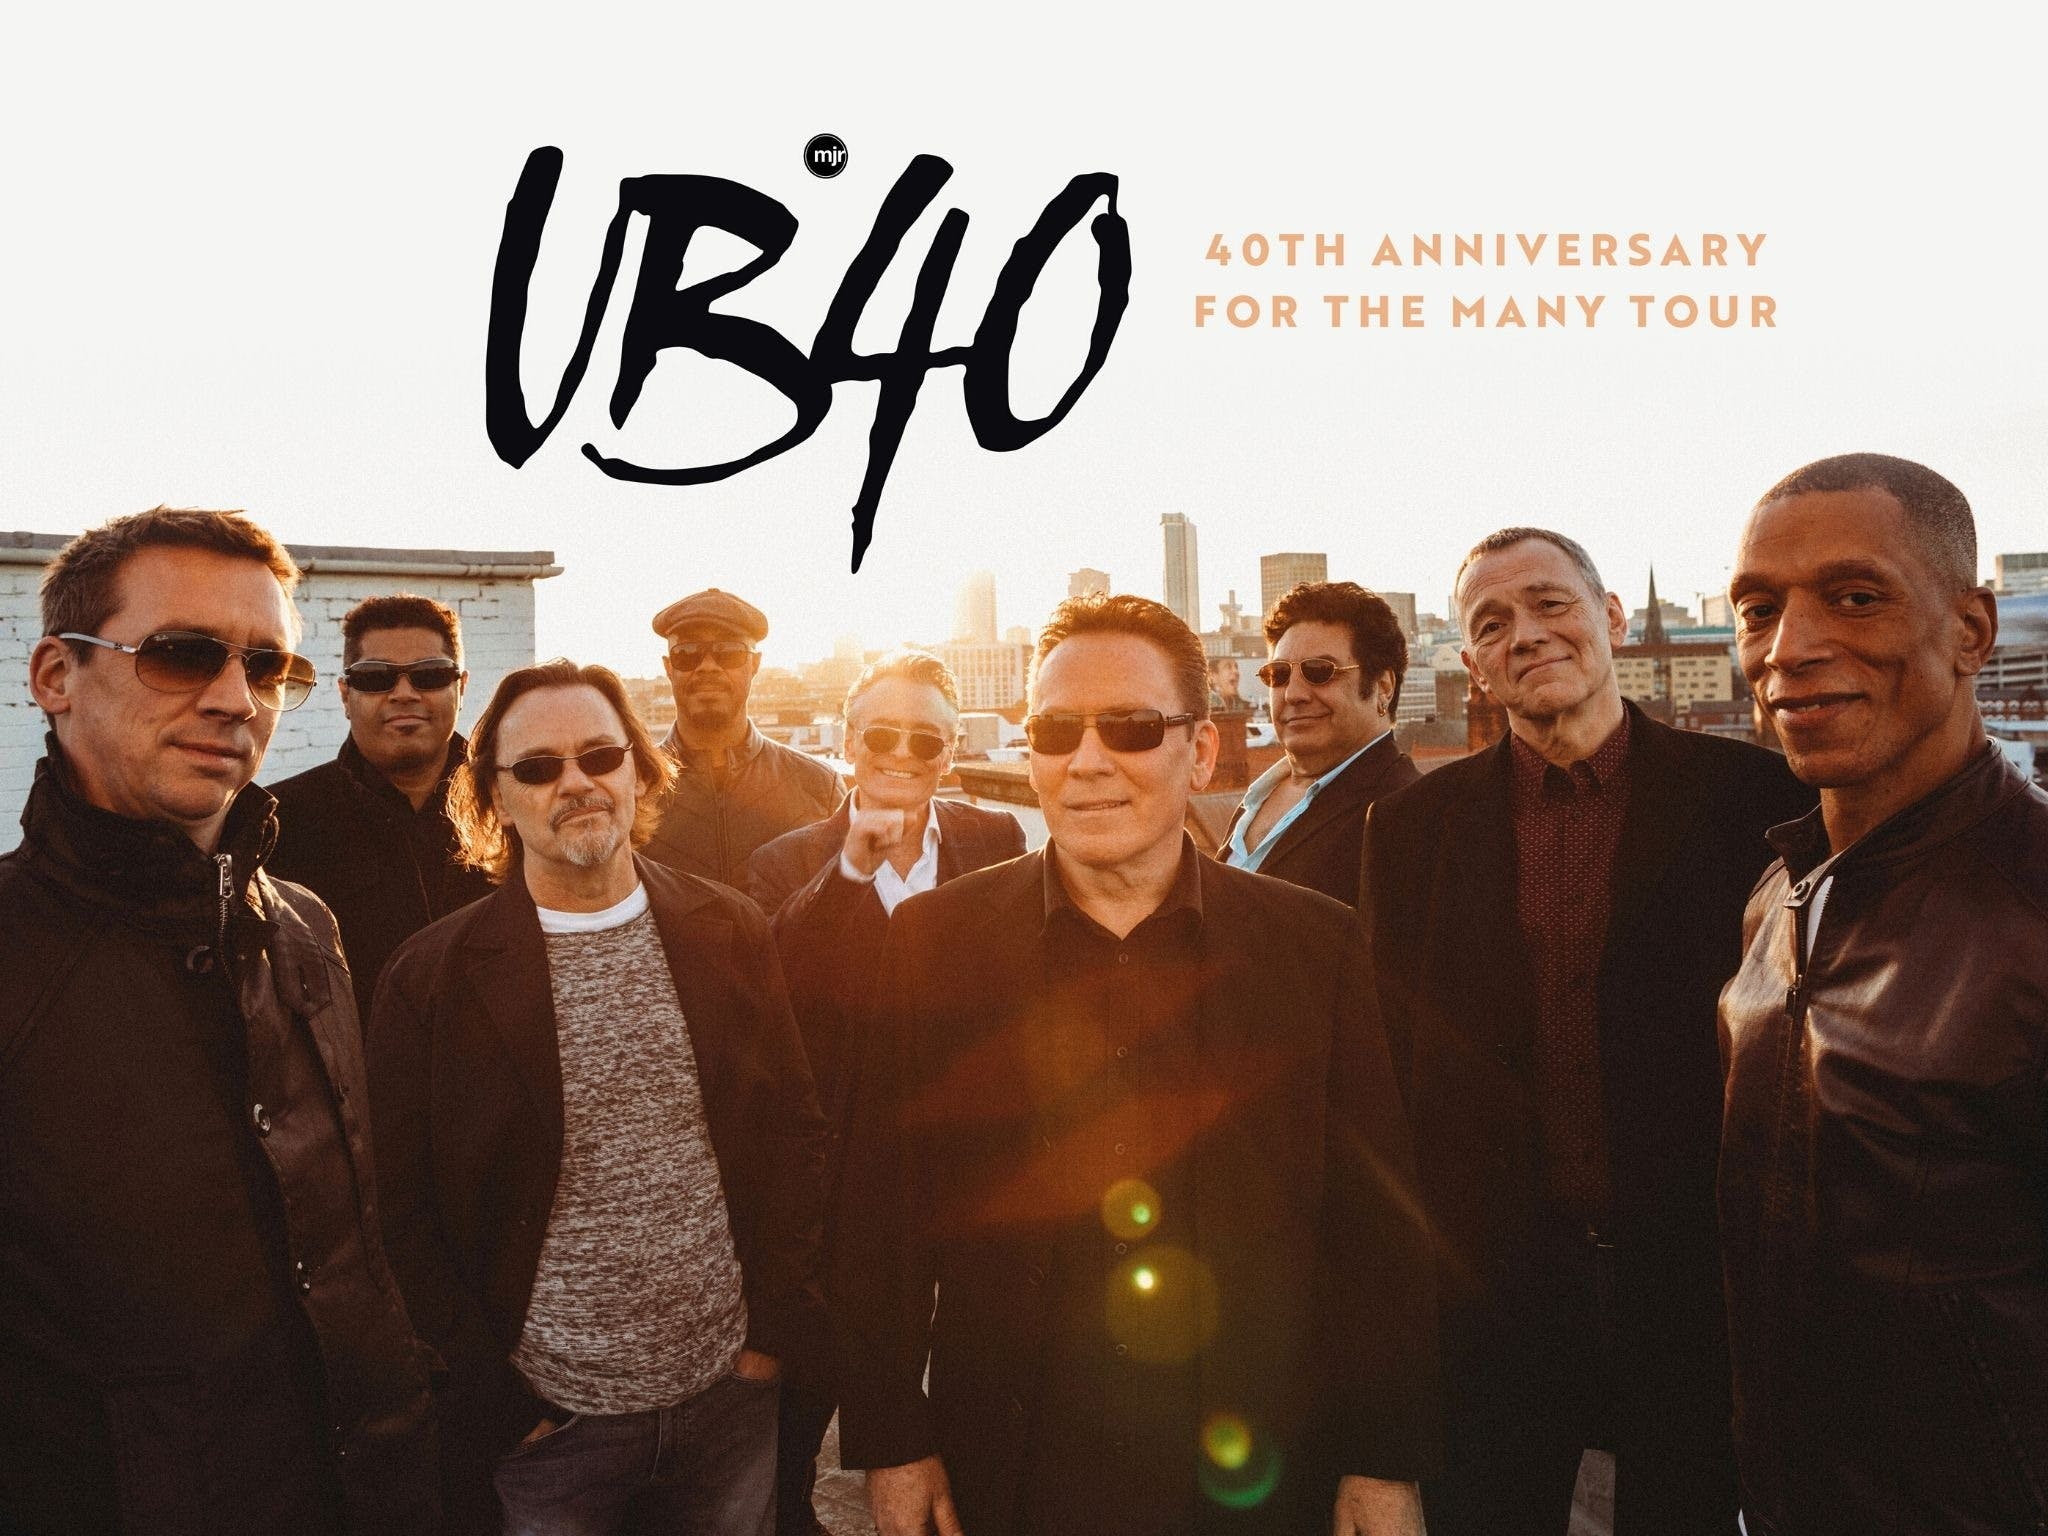 UB40 40th Anniversary Tour - Pubs Sydney